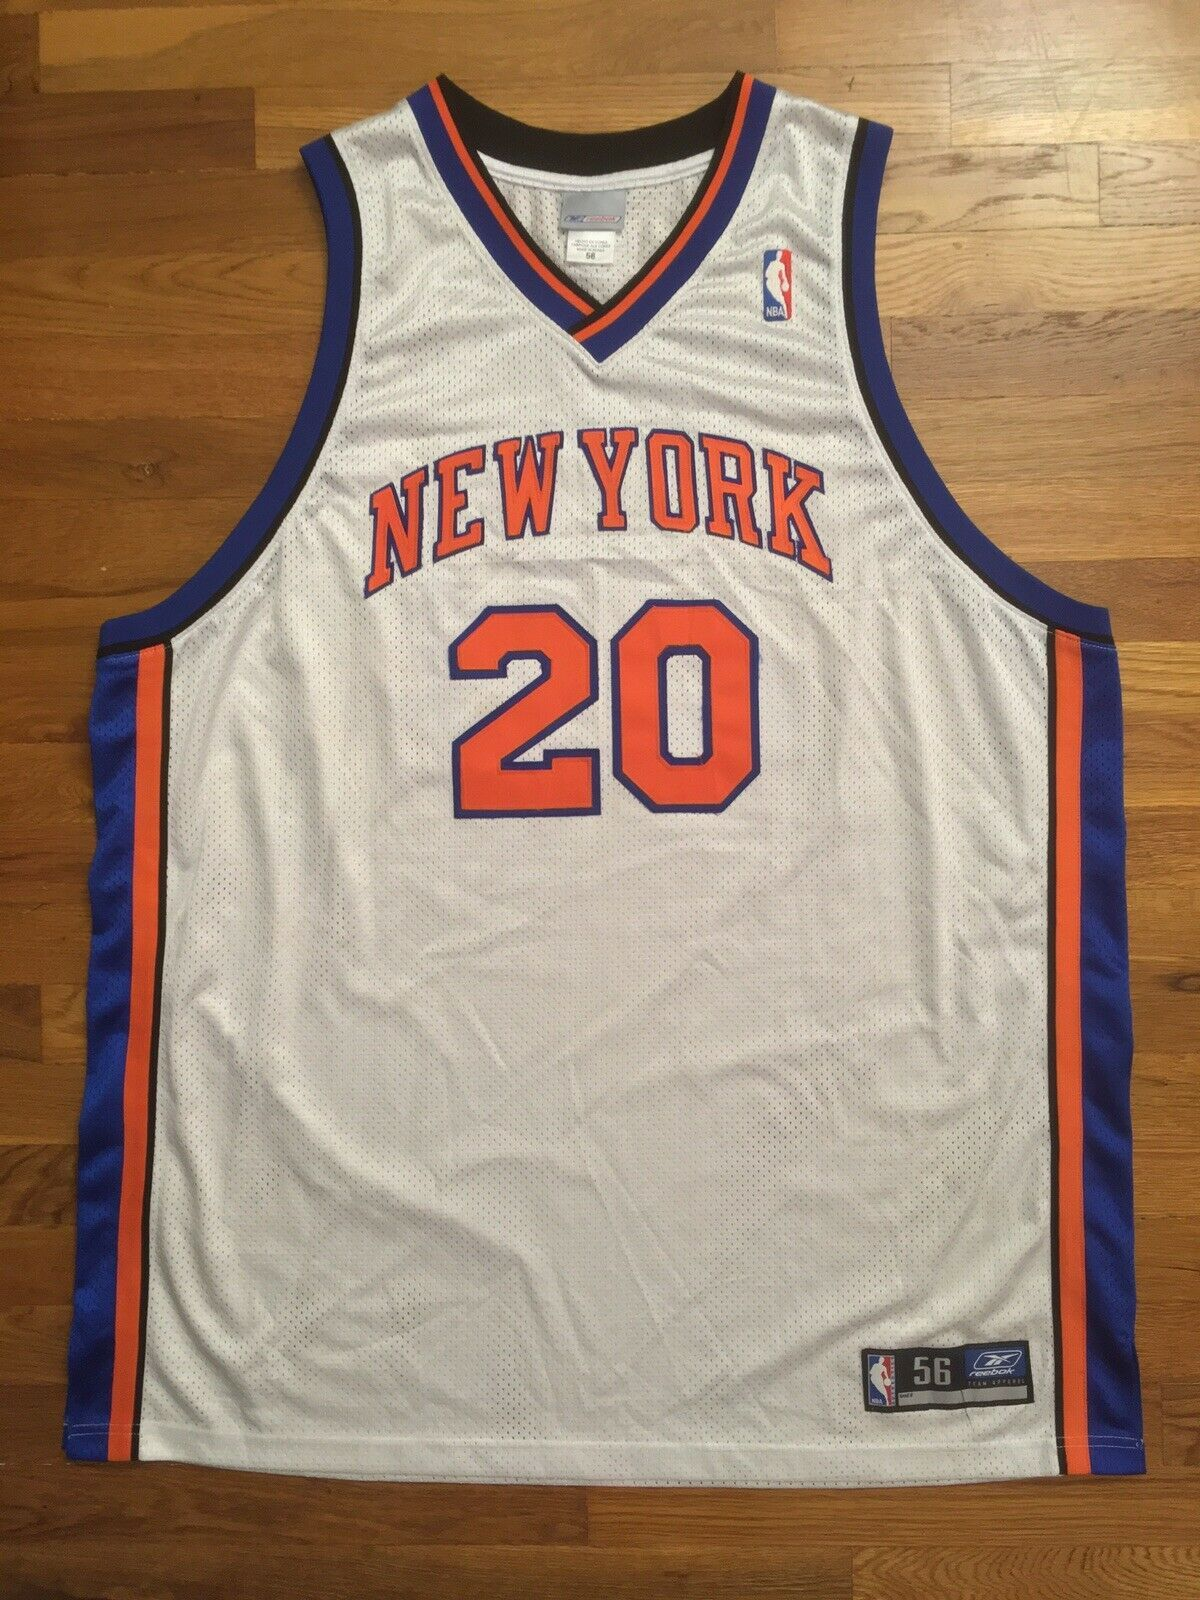 Primary image for Authentic 2003 Reebok New York Knicks NYK Allan Houston Home White Jersey 56